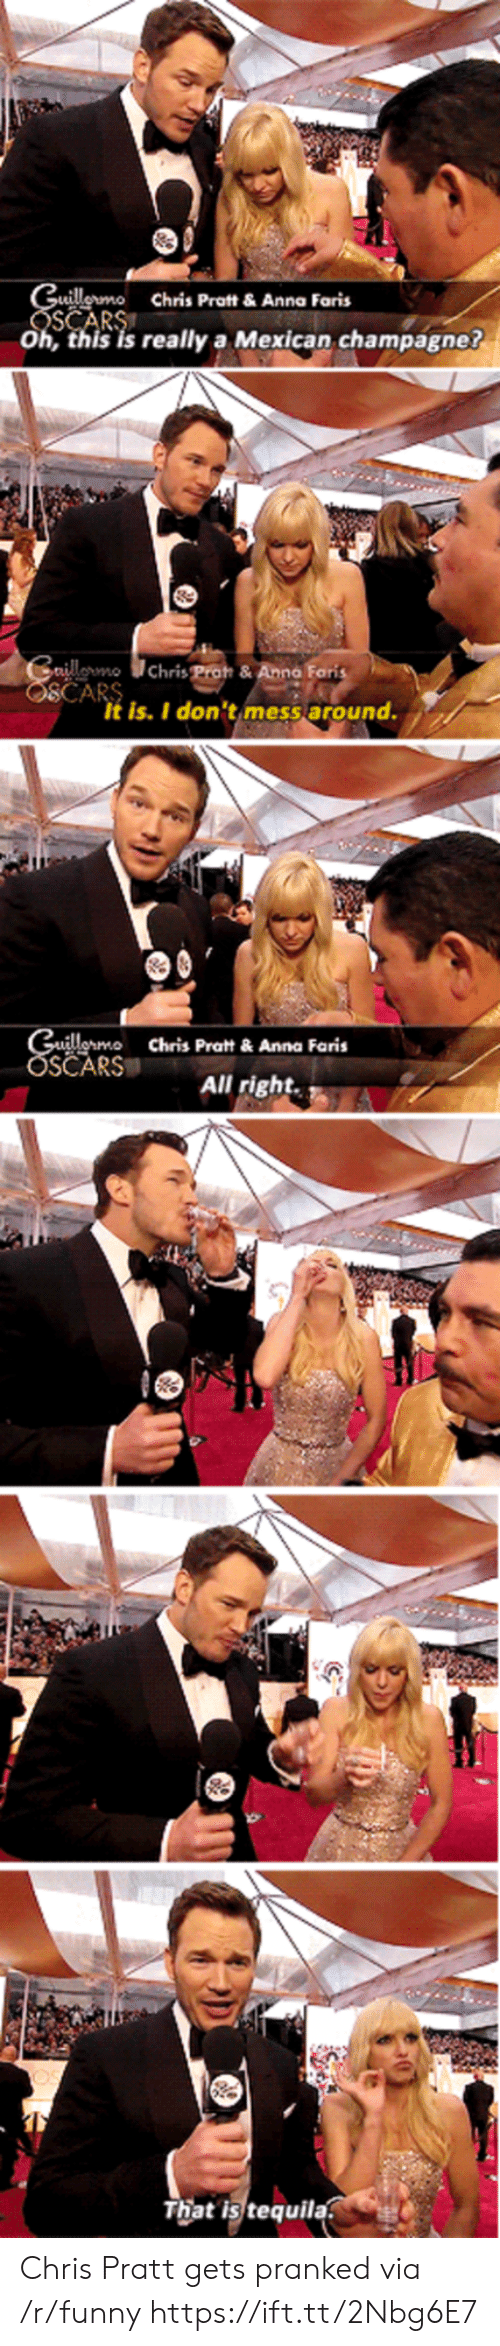 fon: ermo Chris Prot &Anna Faris  Oh, this is really a Mexican champagne?  own  Chris Poh & Anna Fon  It is. I don'timess around.  Chris Pratt&Anna Faris  SČARS  All rightA  That is tequila Chris Pratt gets pranked via /r/funny https://ift.tt/2Nbg6E7